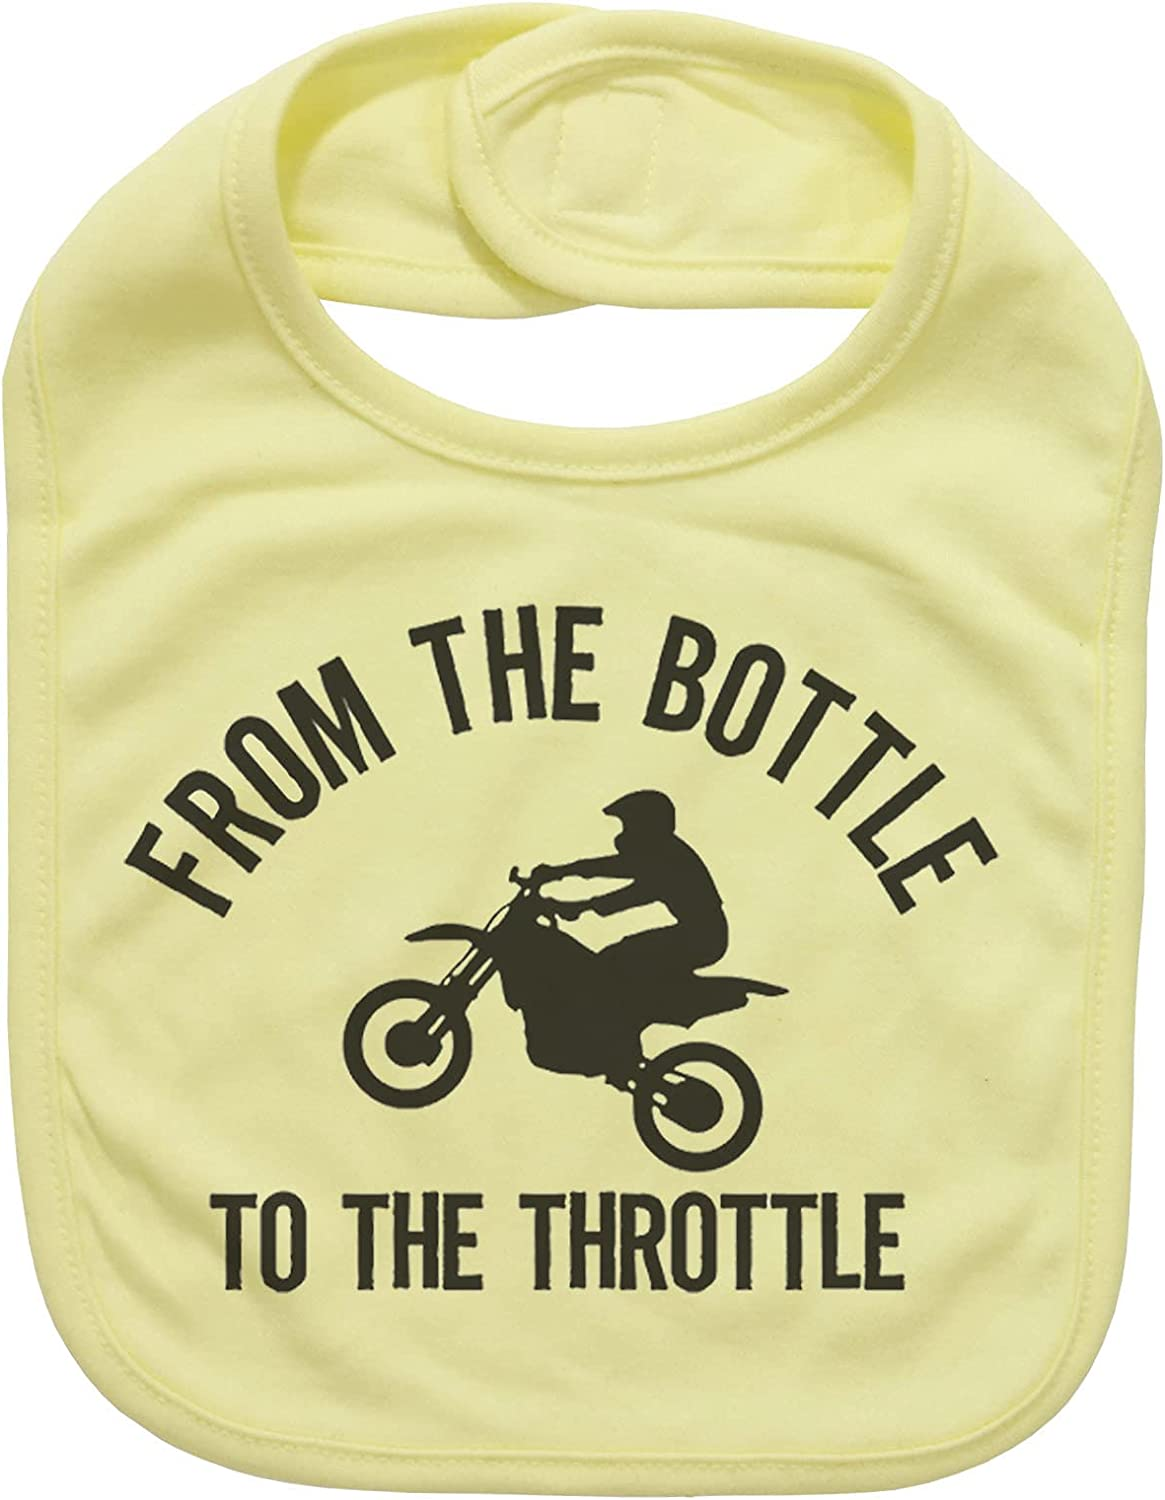 Dirt Bike Bib From Japan's largest assortment The National uniform free shipping Motorcycle To Throttle Sup Bottle